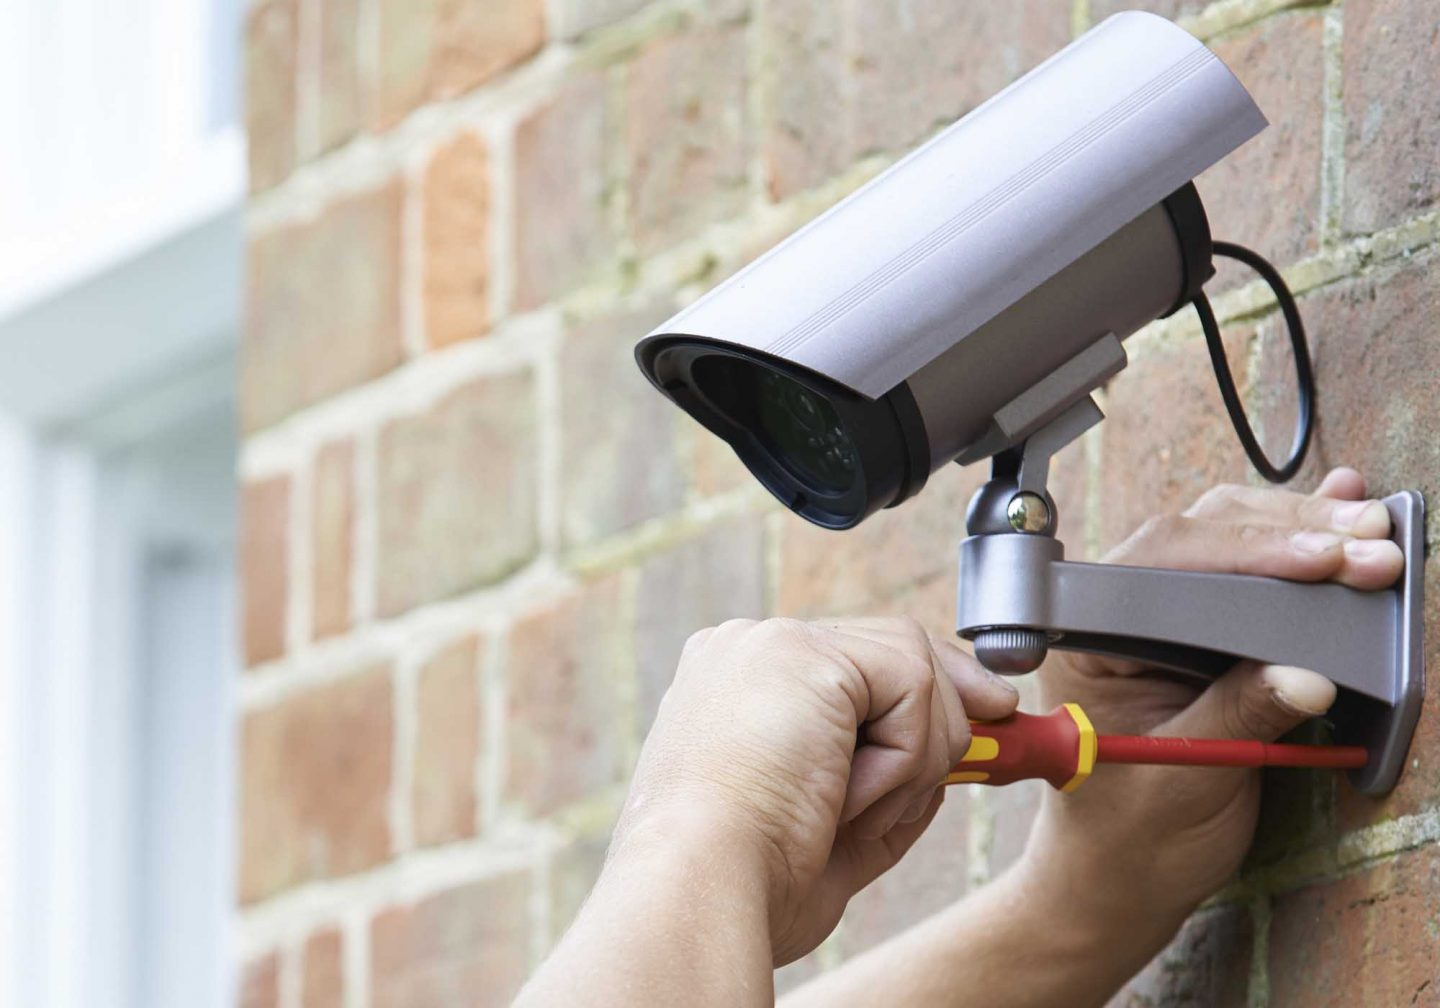 Tips before installing security cameras - SCC - CCTV on